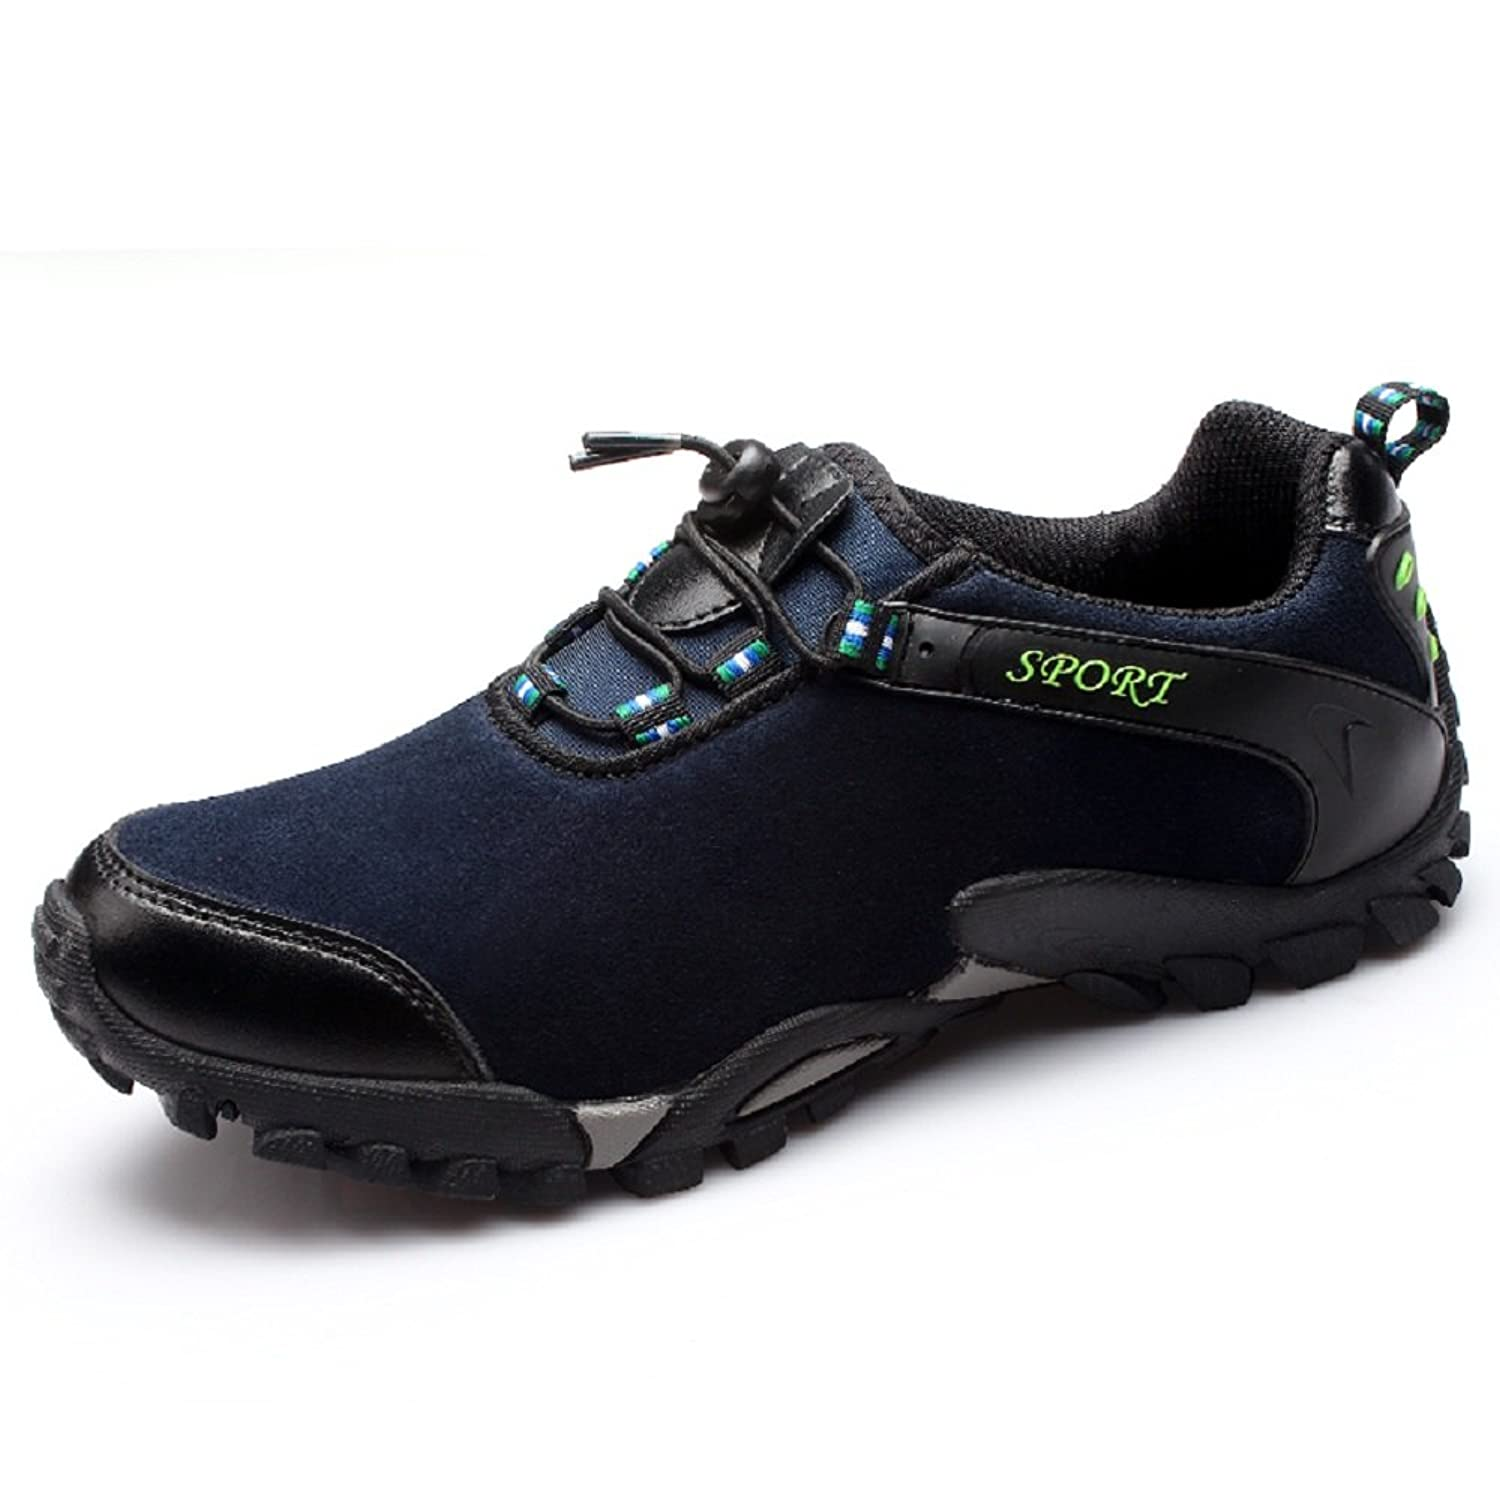 Lfsm Men's leather casual hiking shoes